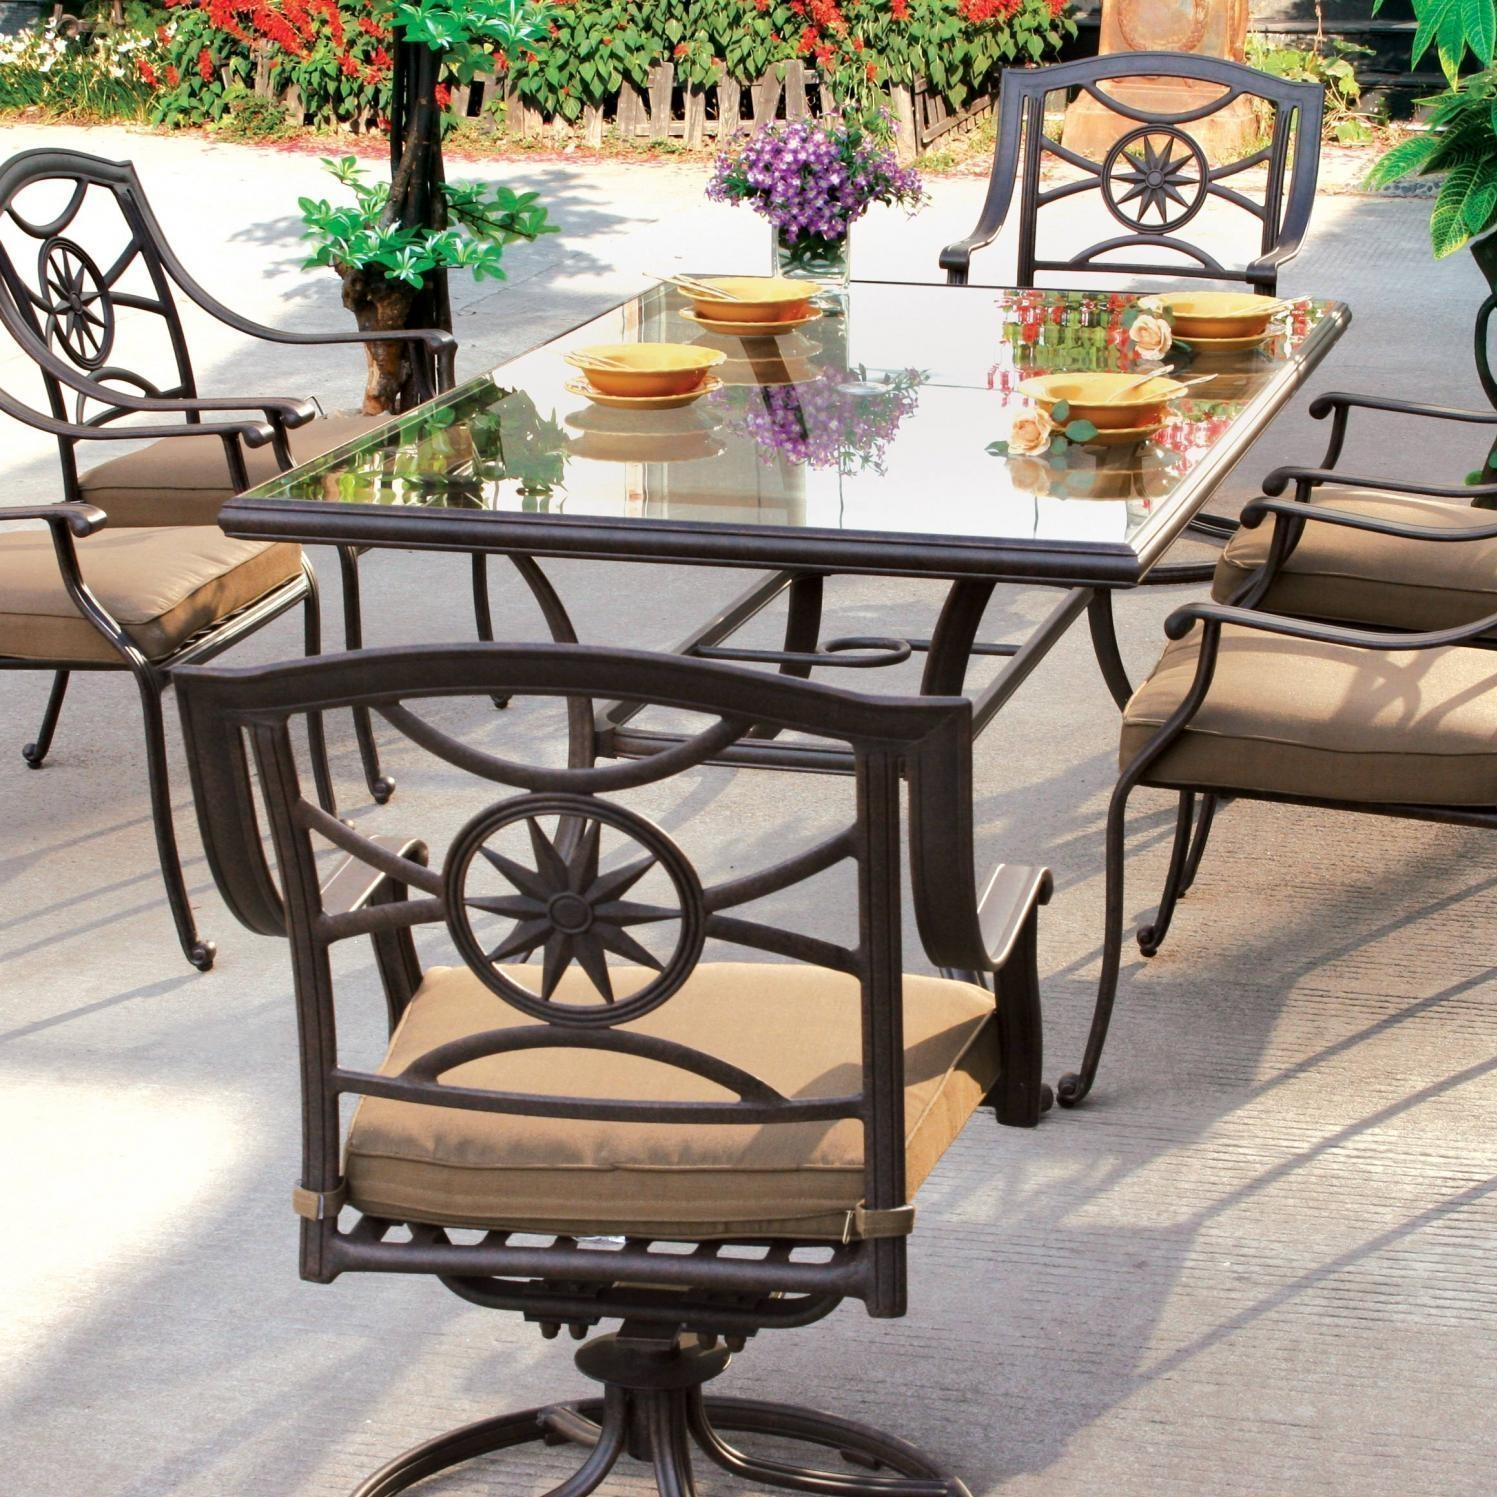 darlee ten star 7 piece patio dining set aluminum glass top. Black Bedroom Furniture Sets. Home Design Ideas